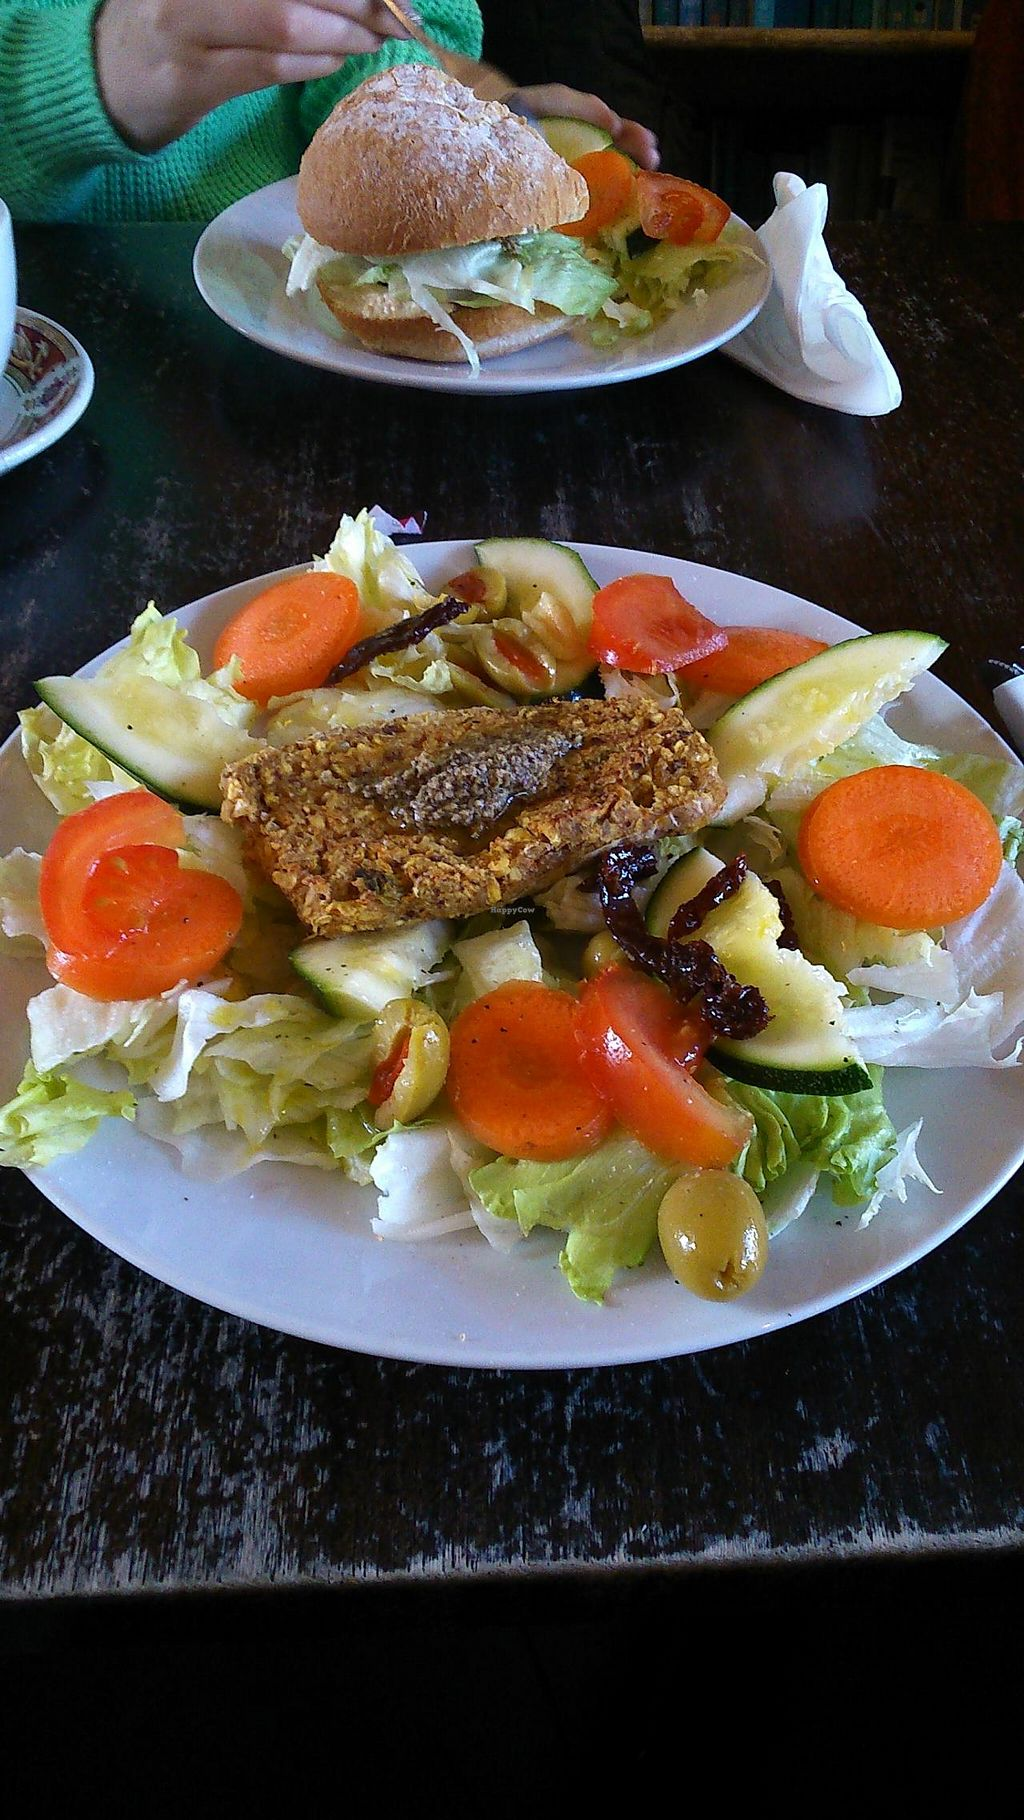 "Photo of CLOSED: CB1 Internet Cafe  by <a href=""/members/profile/saramarshall"">saramarshall</a> <br/>Lentil burger with salad plate <br/> March 21, 2014  - <a href='/contact/abuse/image/34488/66239'>Report</a>"